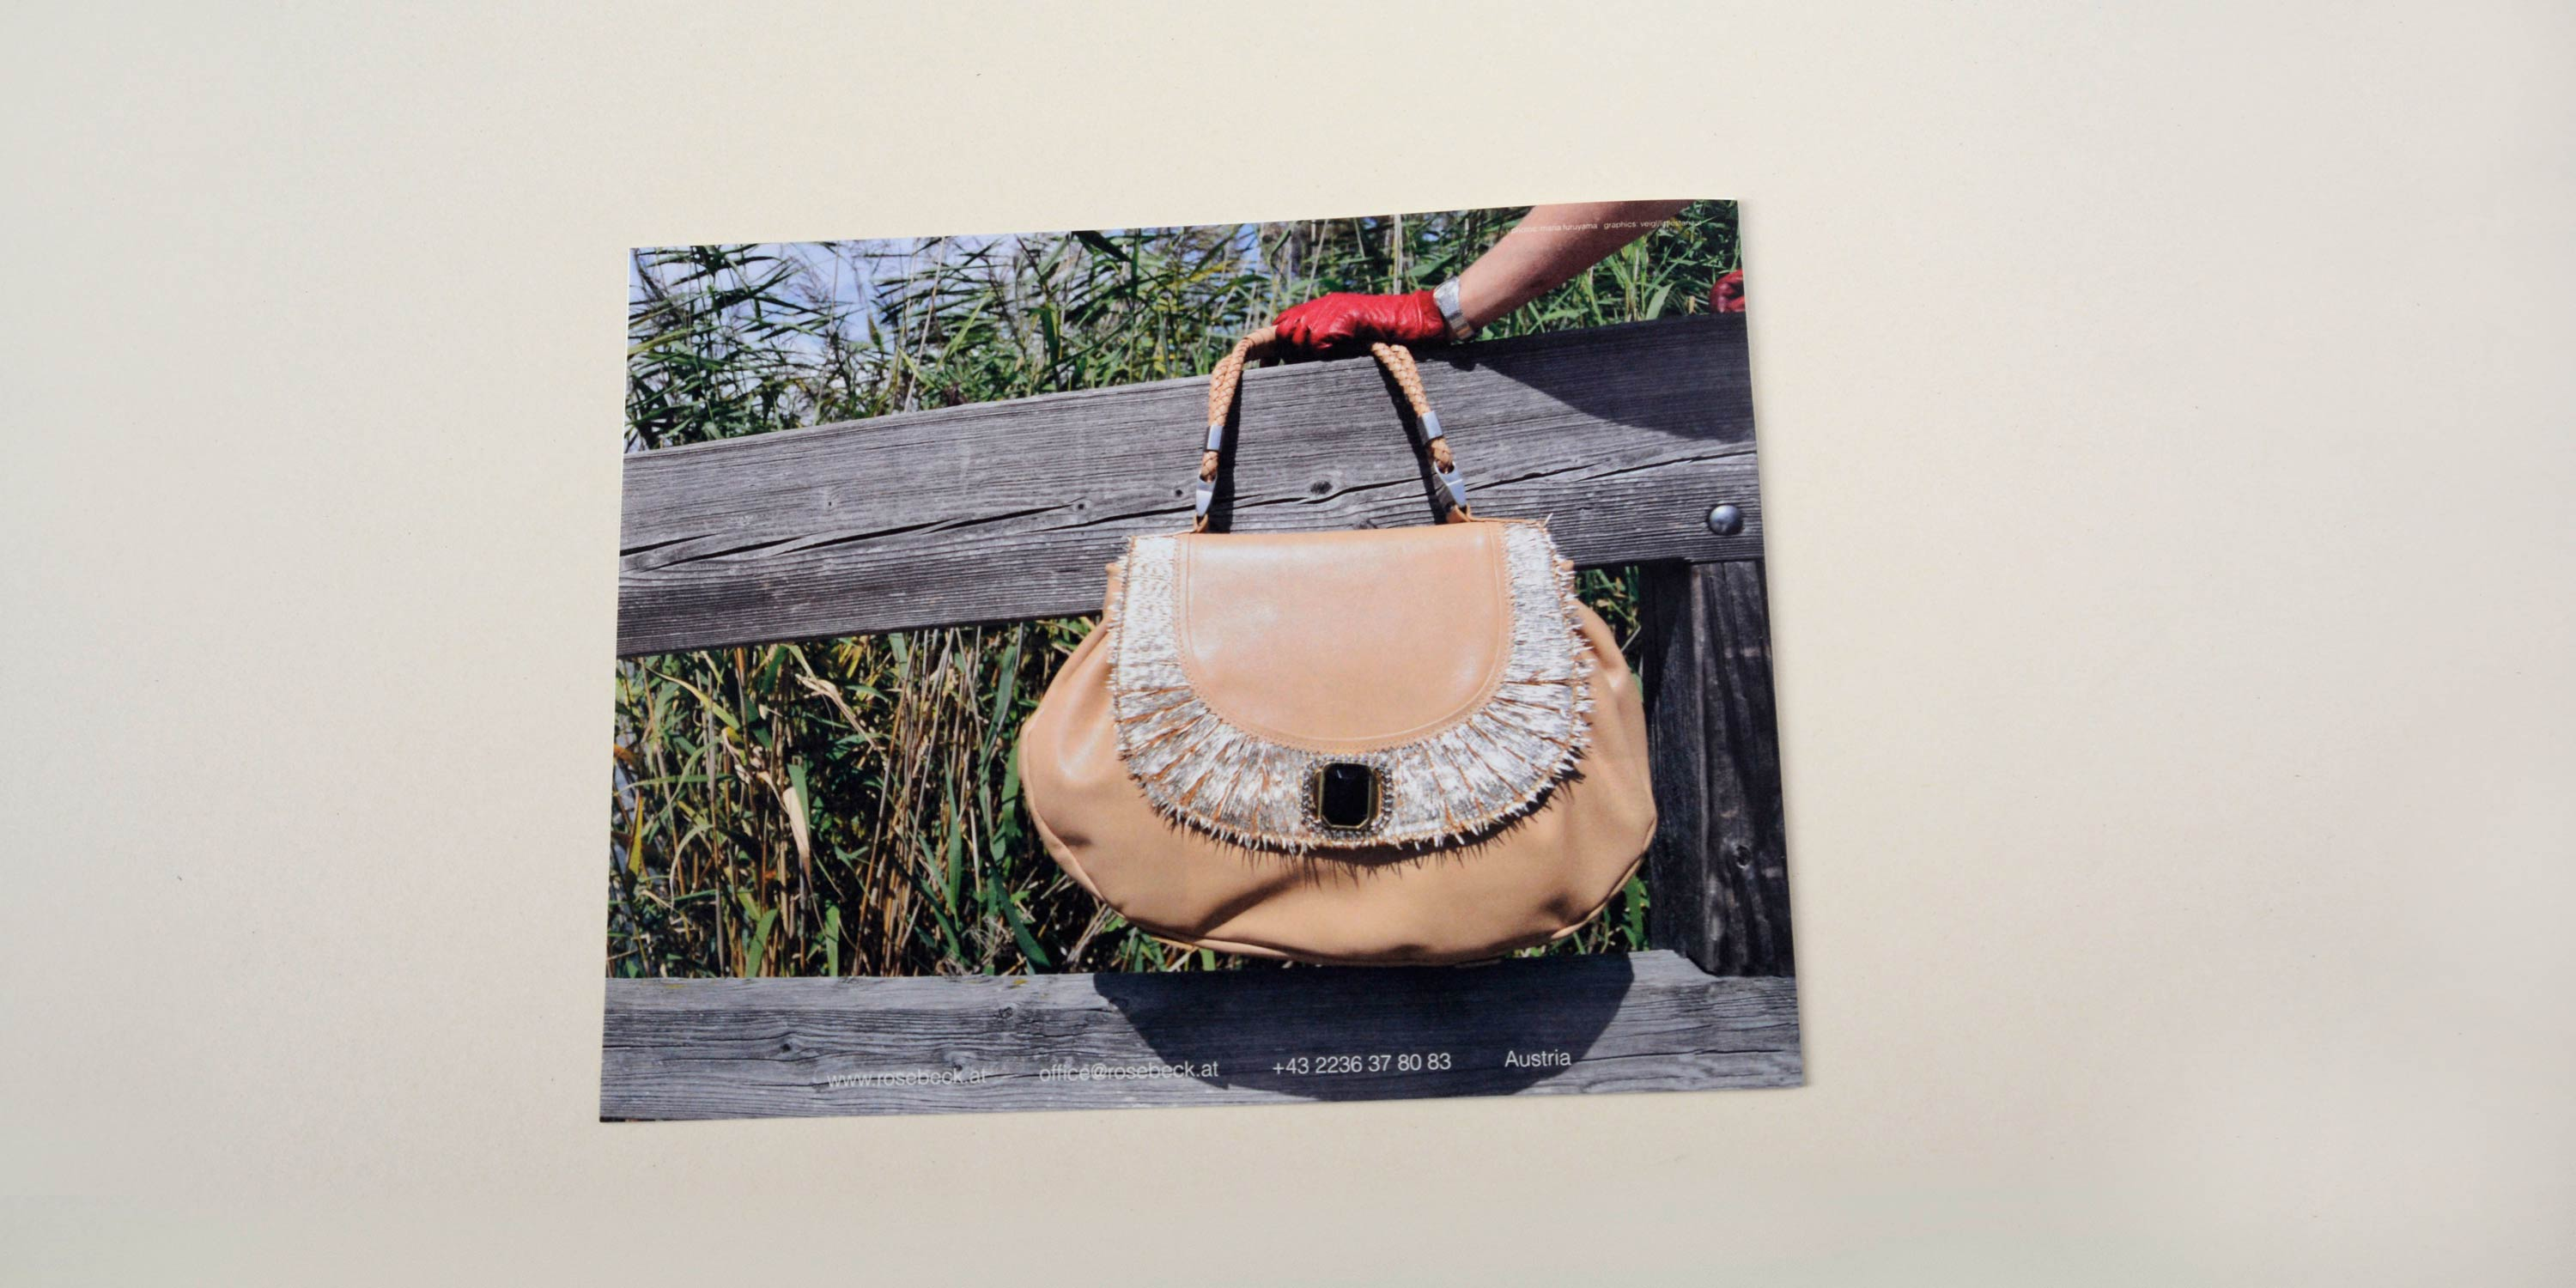 Back catalogue. Full-page photo hand holding large handbag in front of wooden railing. Reeds in the background. Row of small text at bottom overlayed.